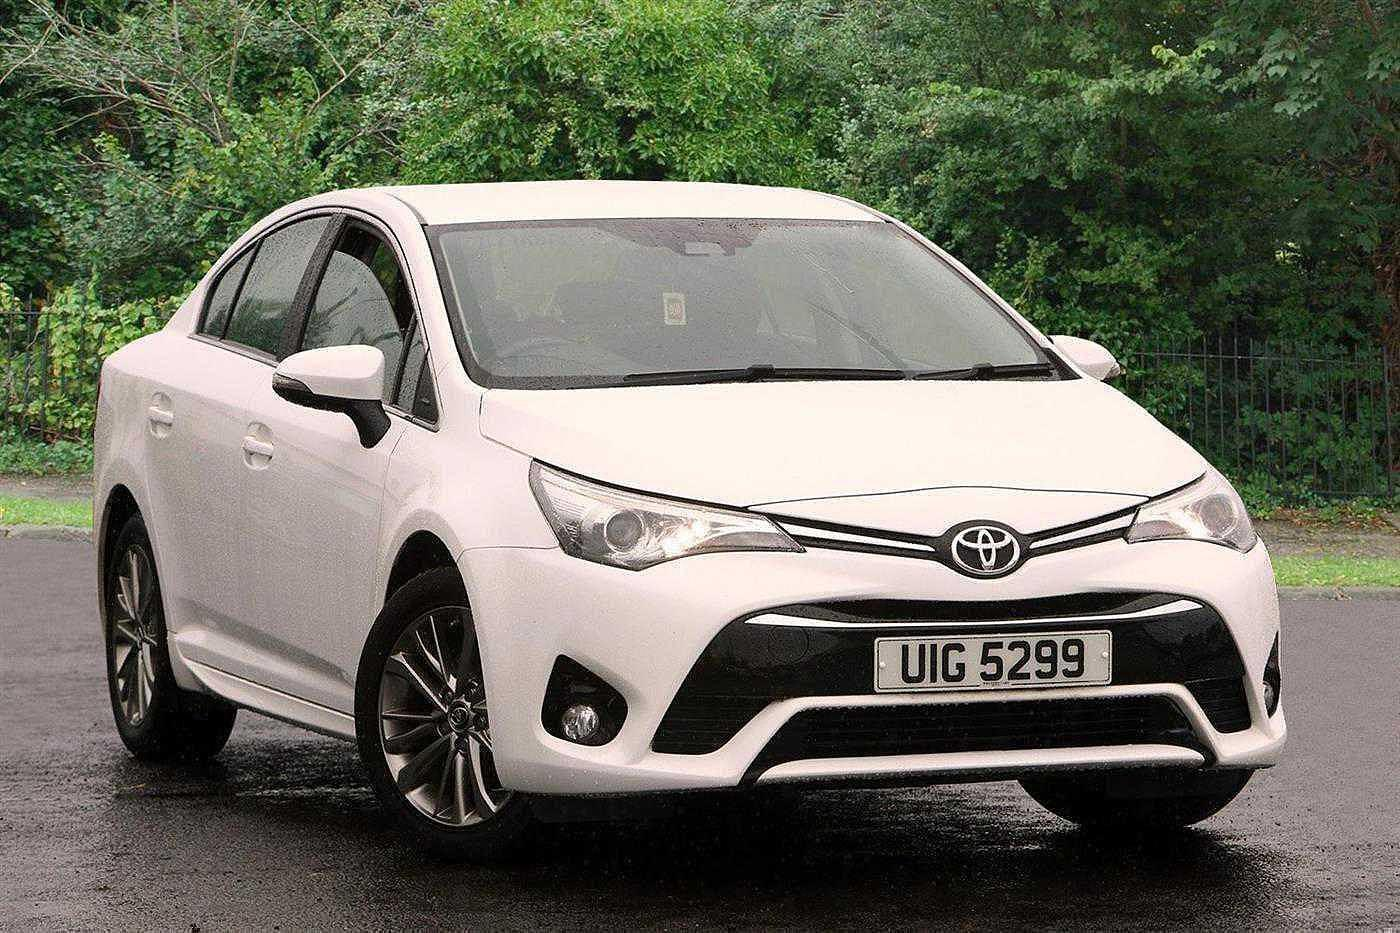 Toyota Avensis 1.6 D-4D Business Edition 4-Dr Saloon Diesel White